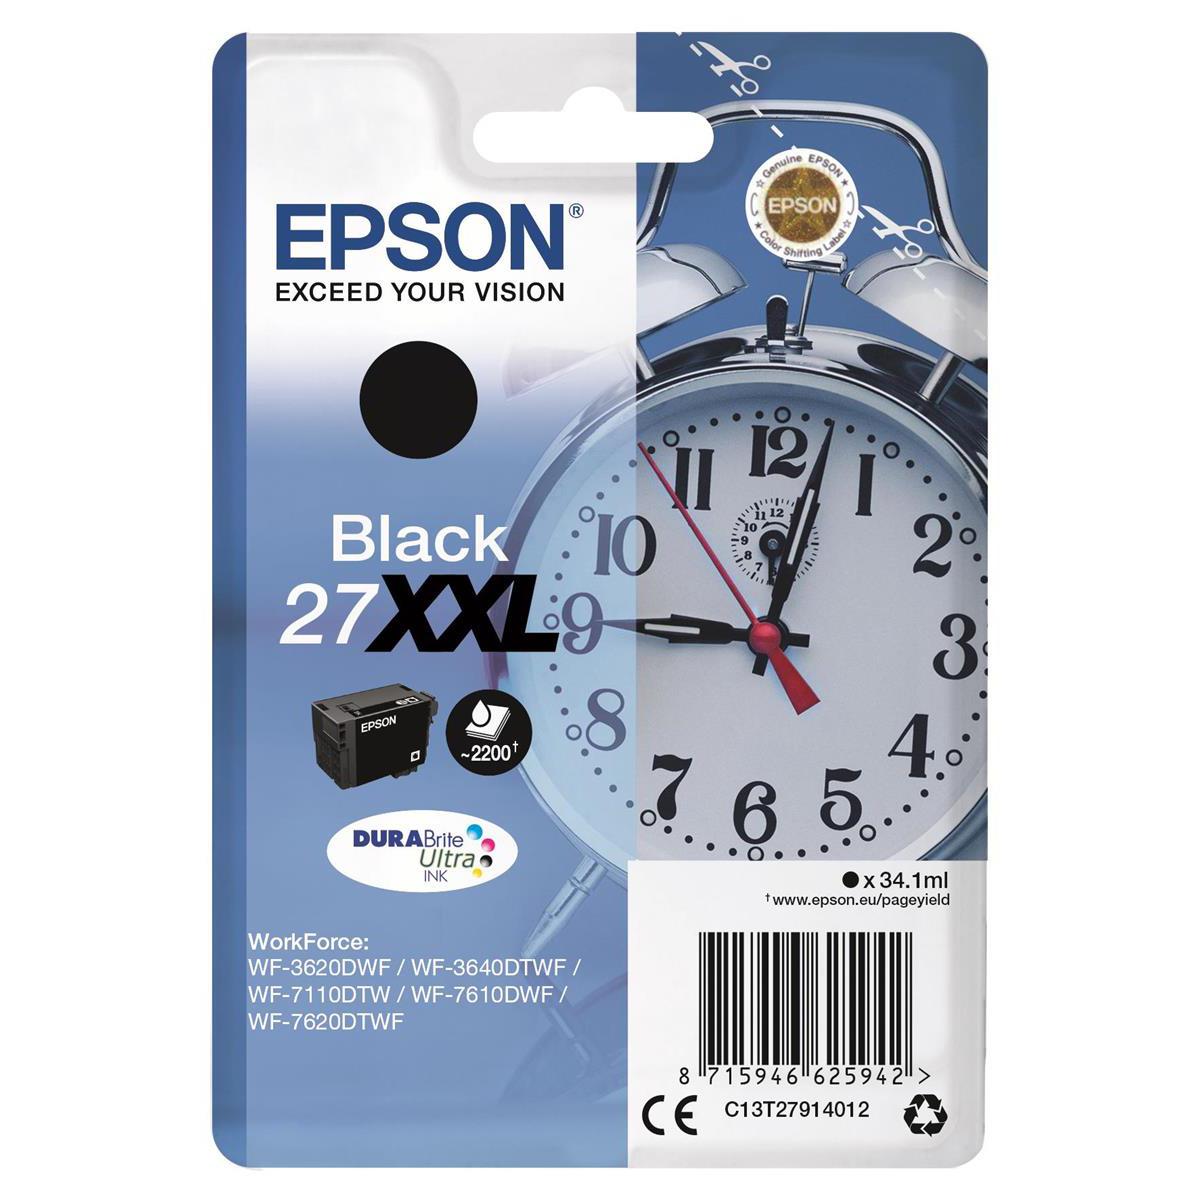 Epson 27XXL IJ Cart Black C13T27914012